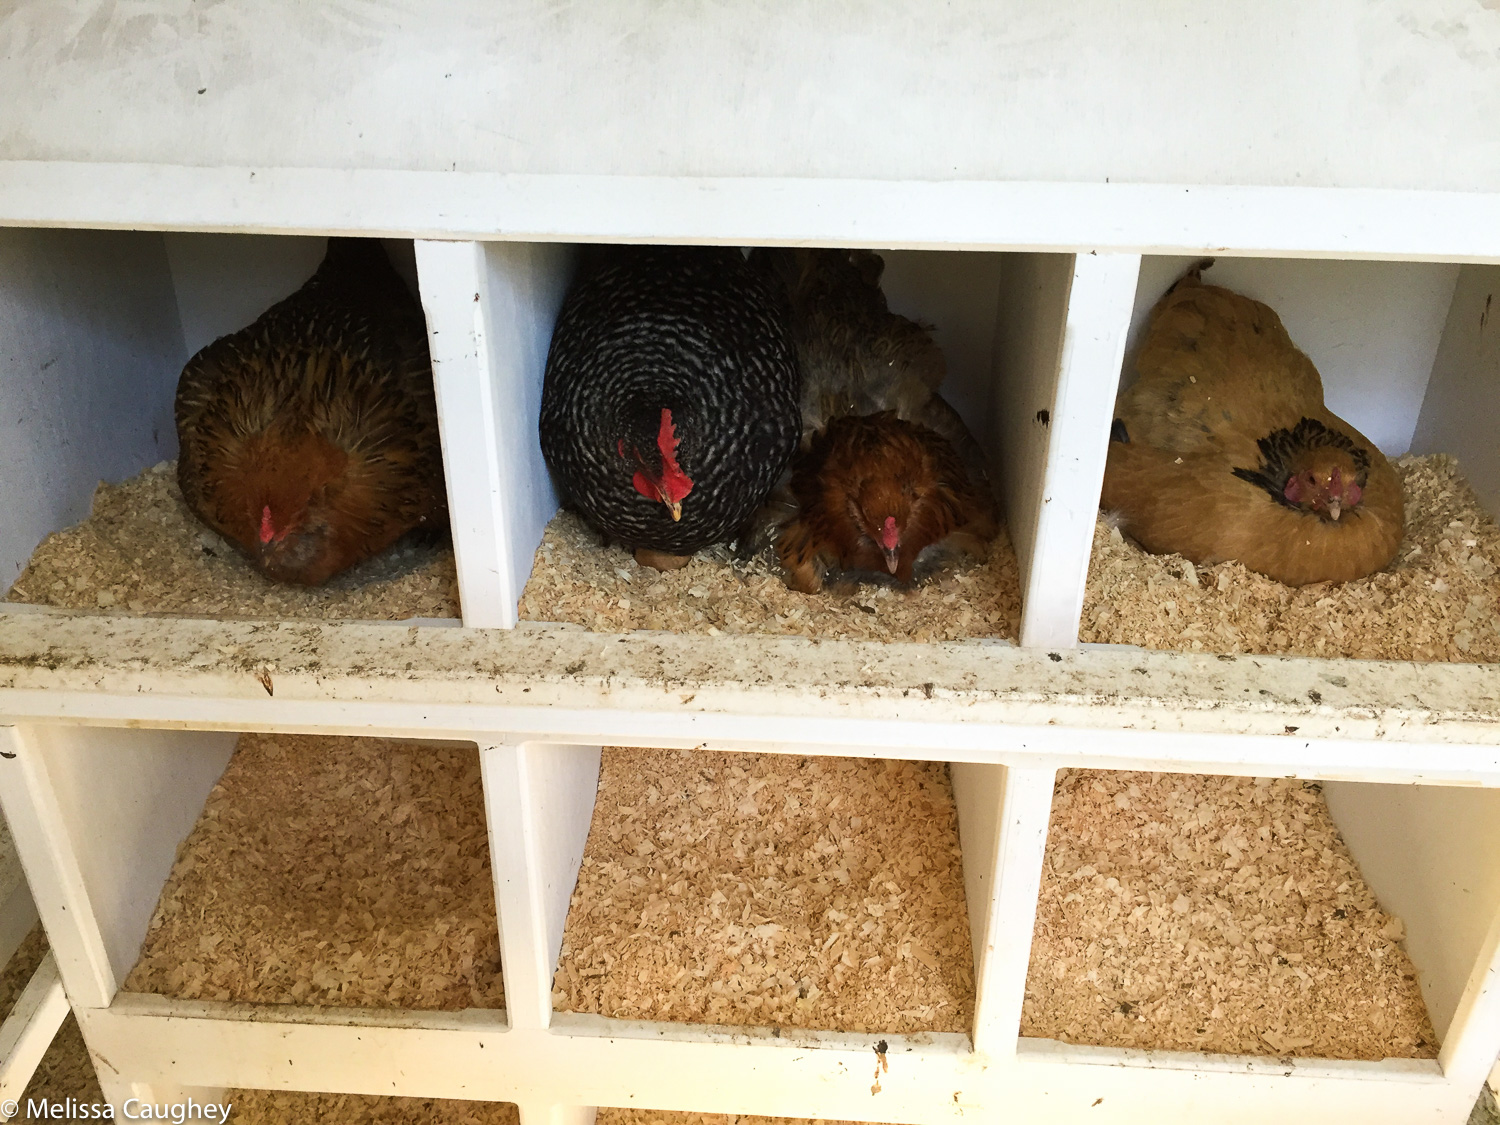 Original_Caughey-MelissaCaughey-chickens in nesting box chickens dusty